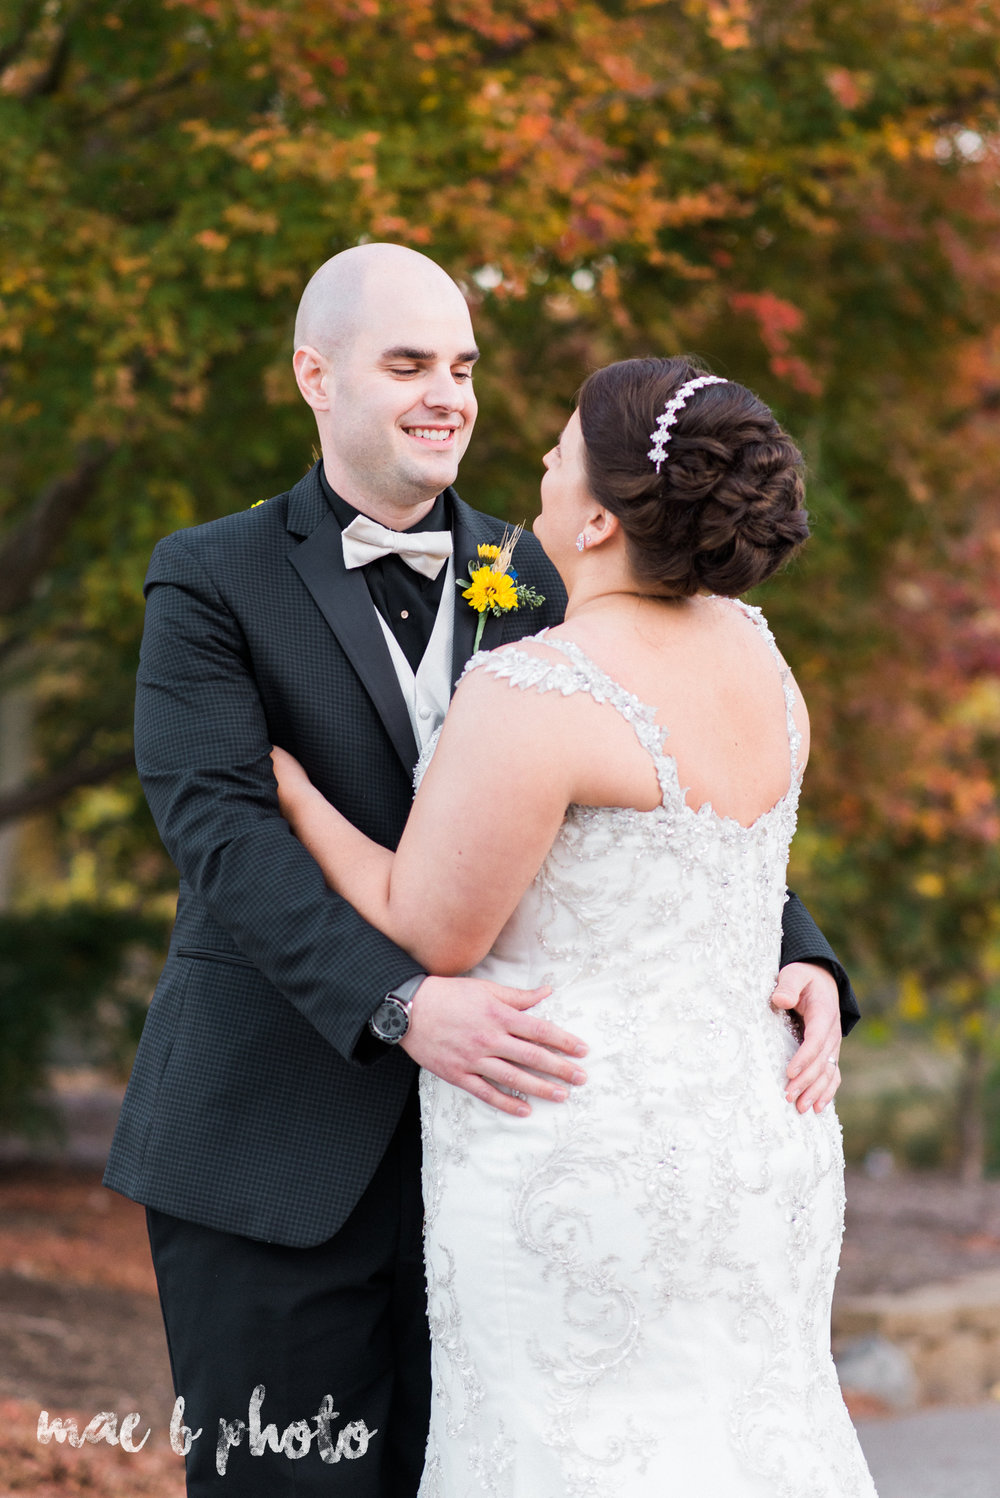 kaylynn & matt's fall zoo wedding at the cleveland metroparks zoo in cleveland ohio photographed by mae b photo-24.jpg